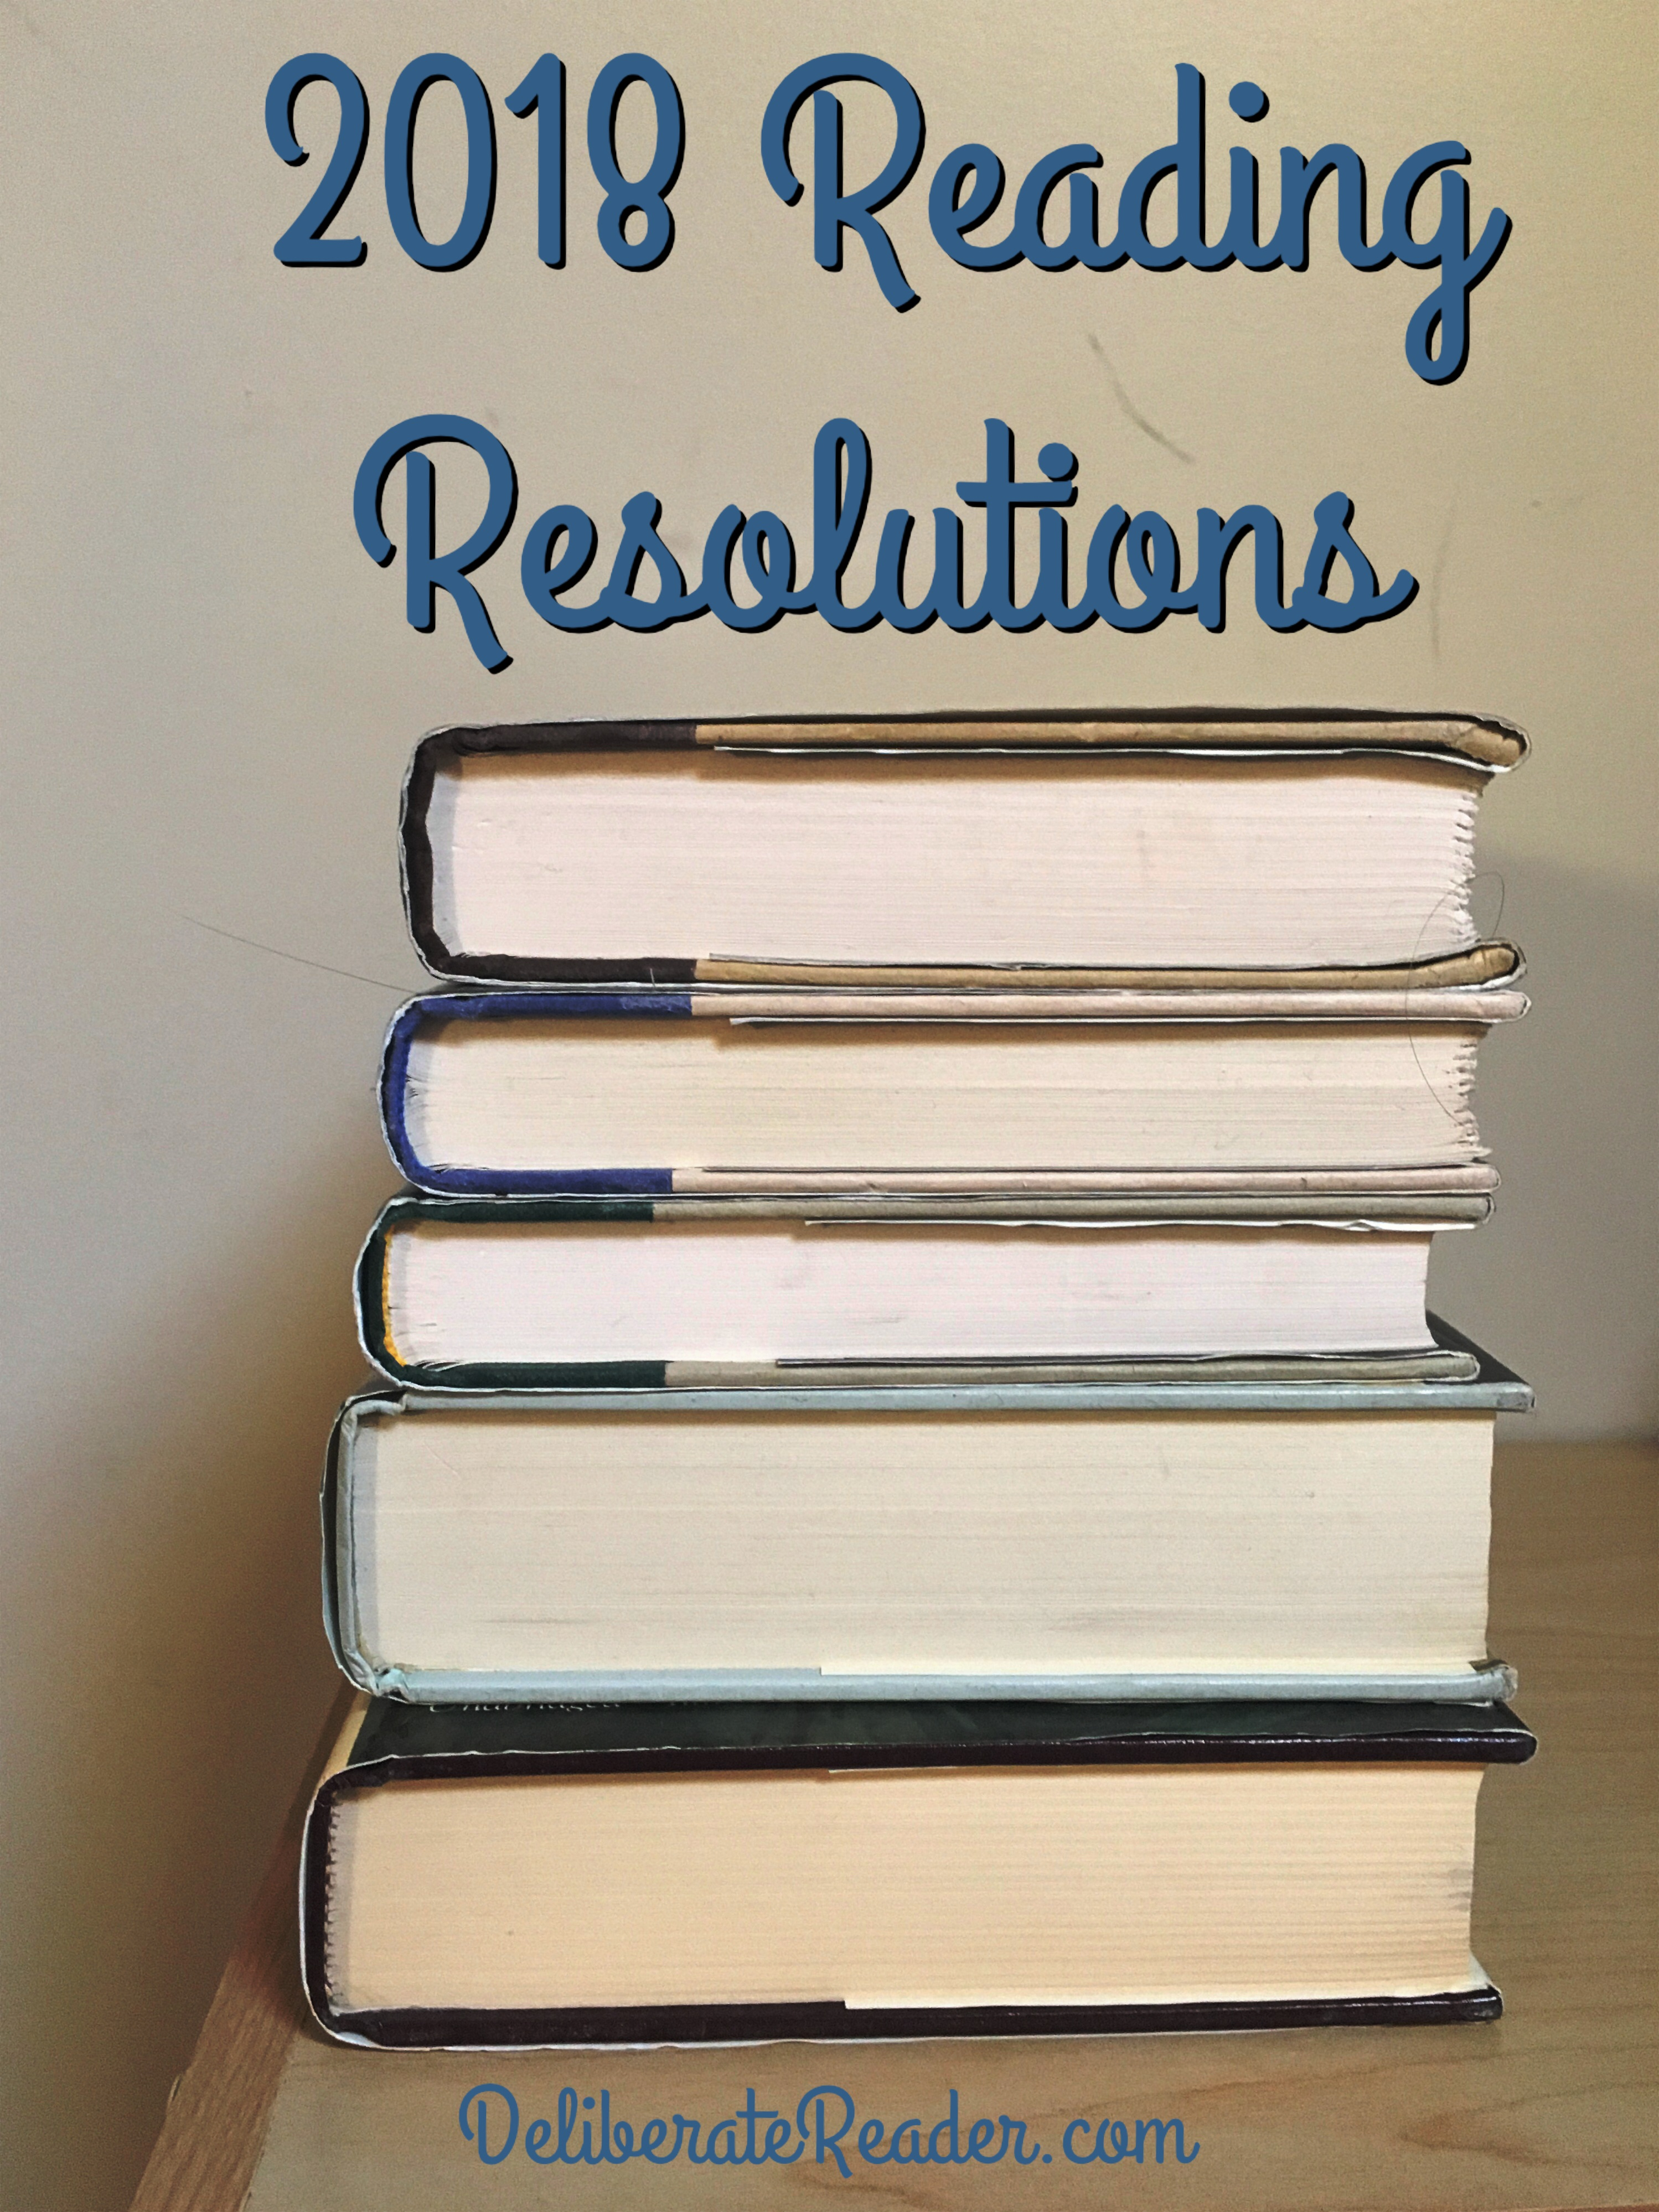 2018 Reading Resolutions and Goals